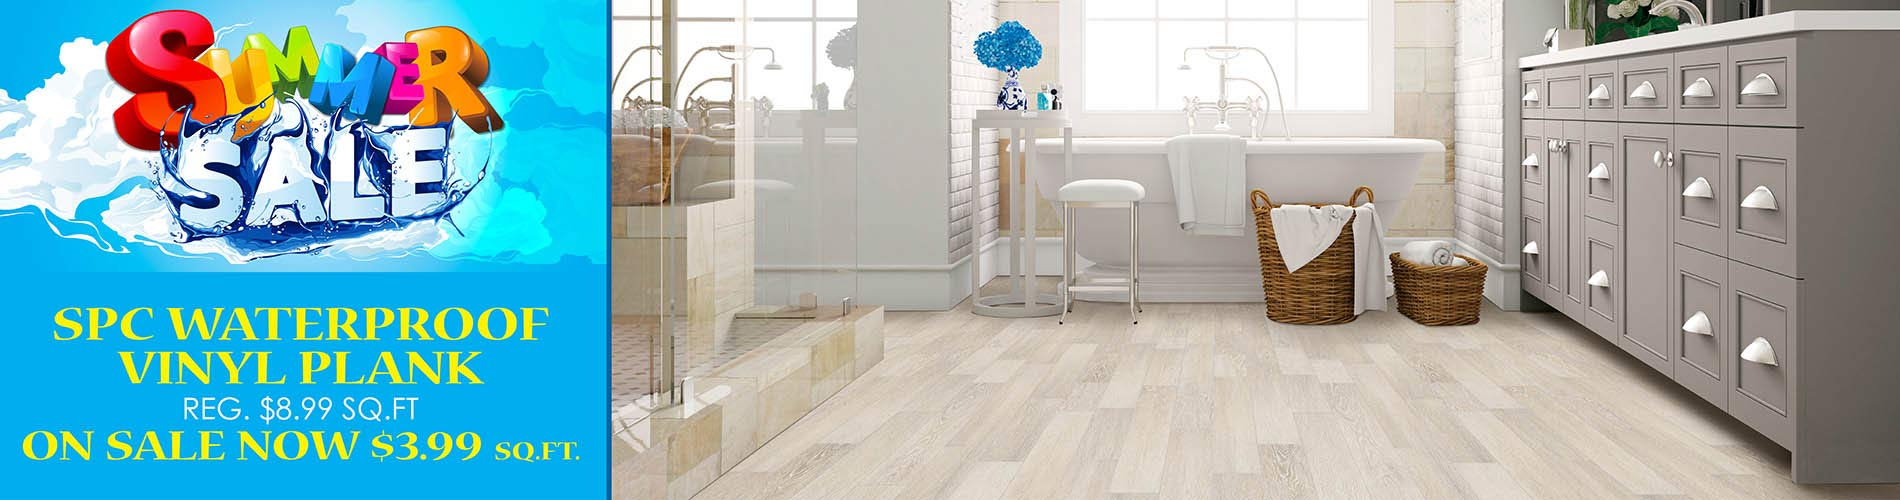 Waterproof vinyl plank now $3.99 sq.ft. during our Summer Sale at Fine Floorz!